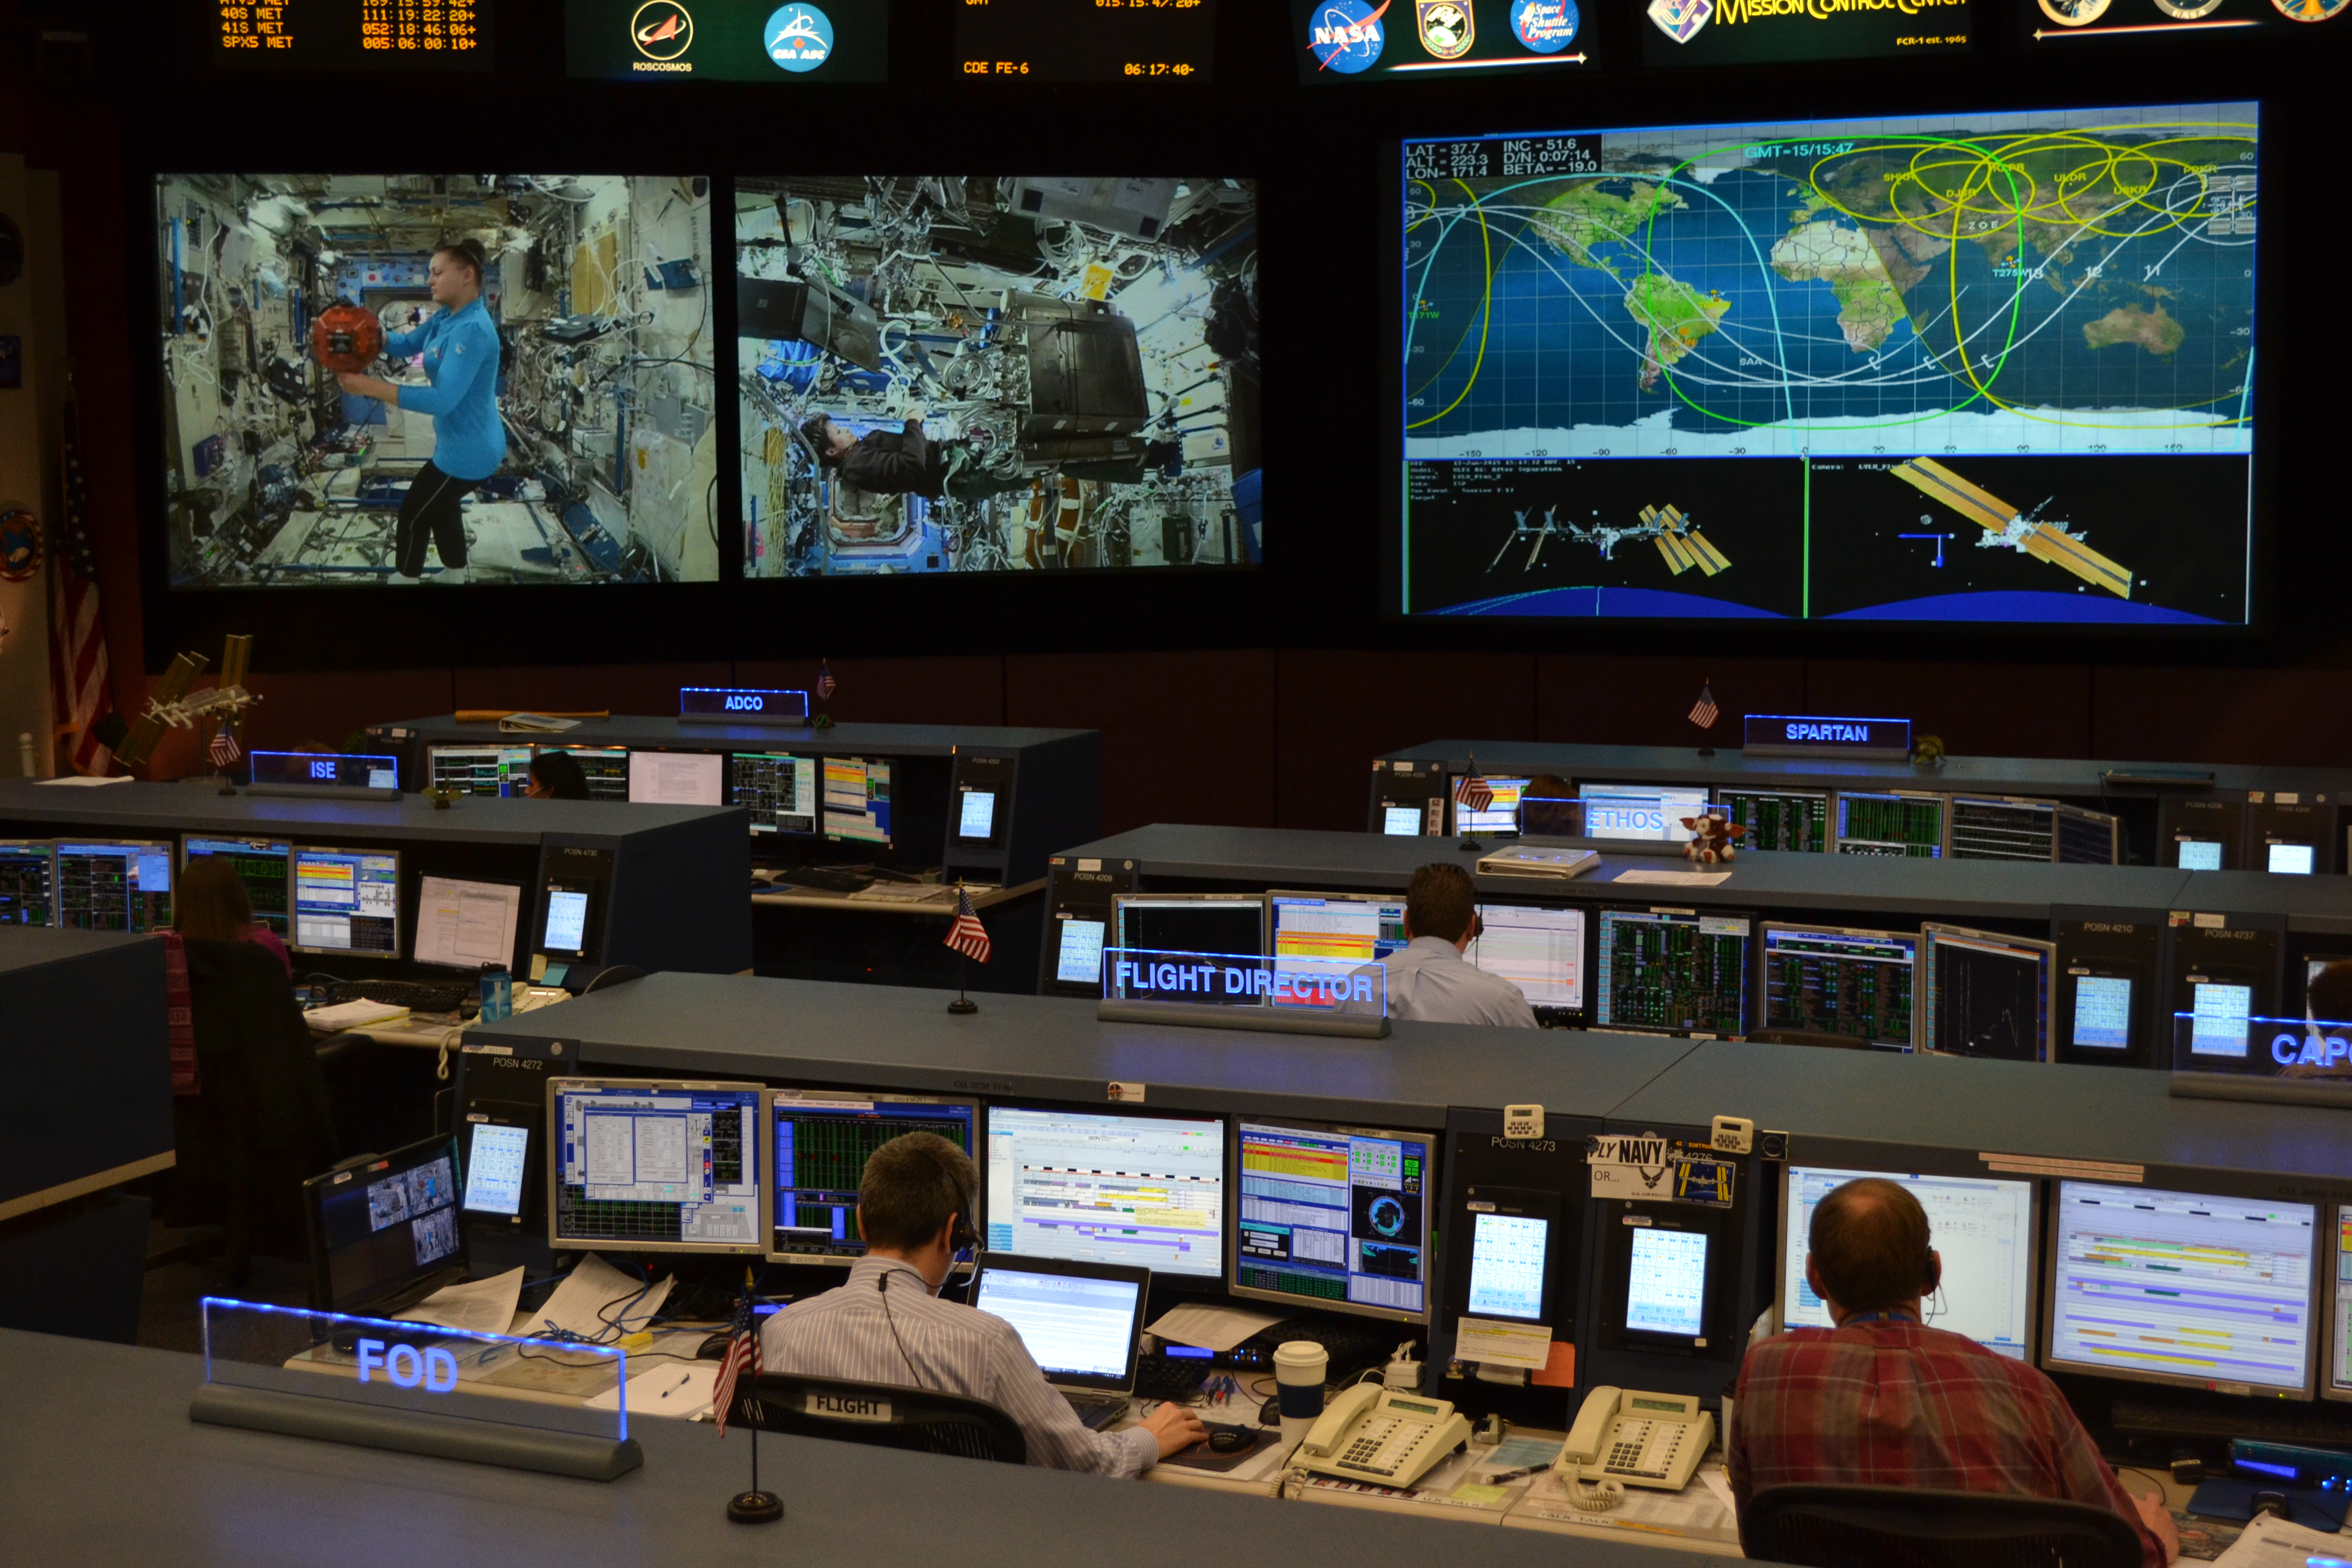 NASA Mission Control for Space Station Houston | Jason's ...